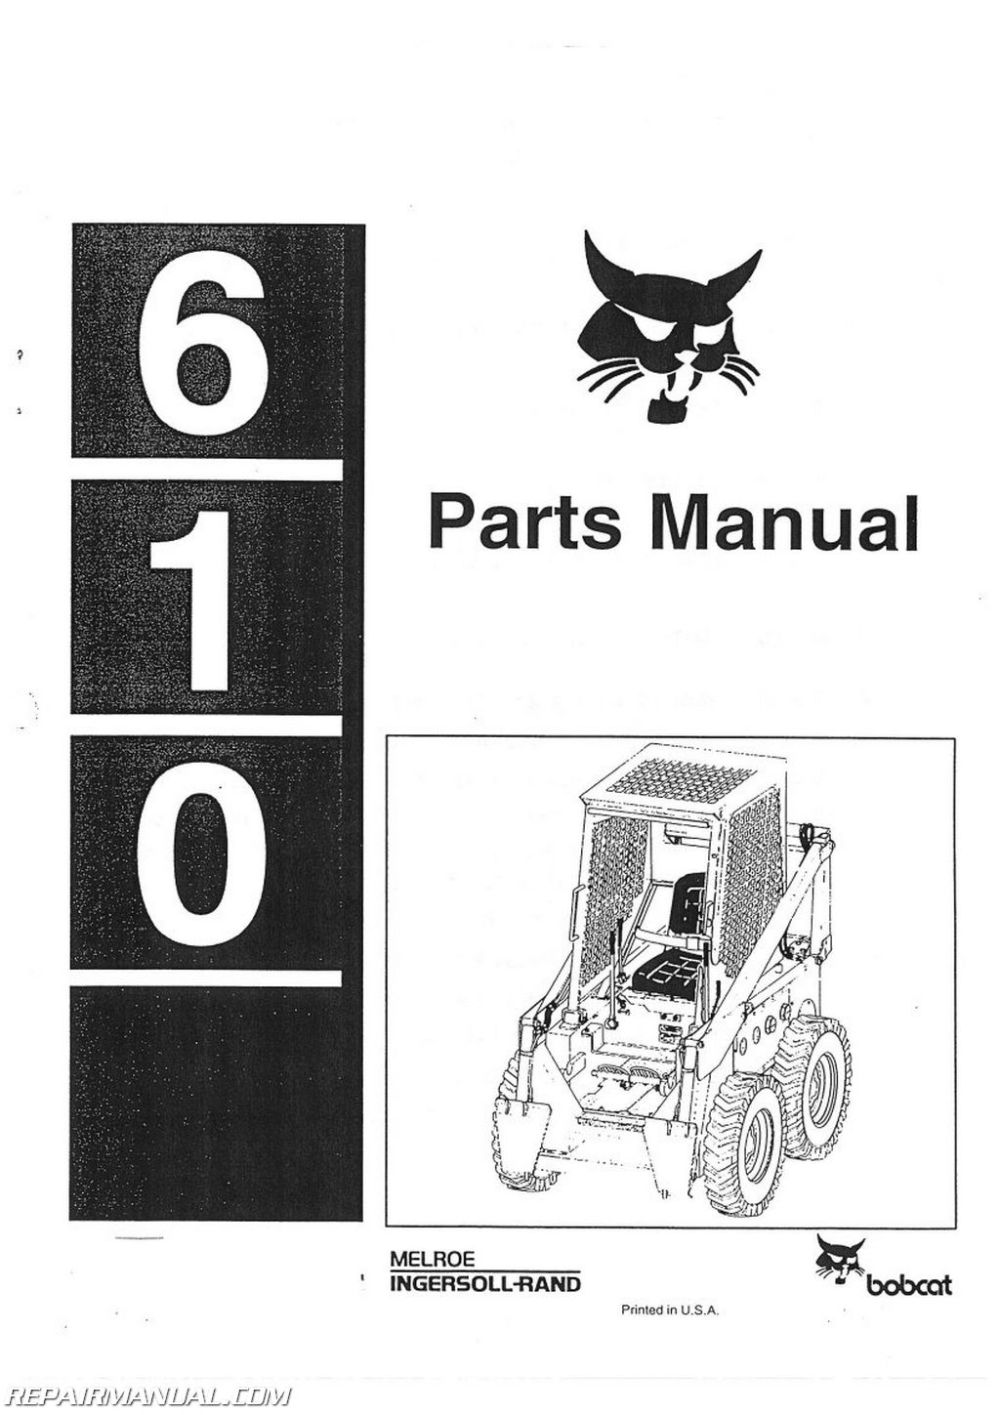 medium resolution of bobcat 610 wiring diagram wiring diagram origin bobcat 610 ignition wiring diagram 610 bobcat wiring diagram